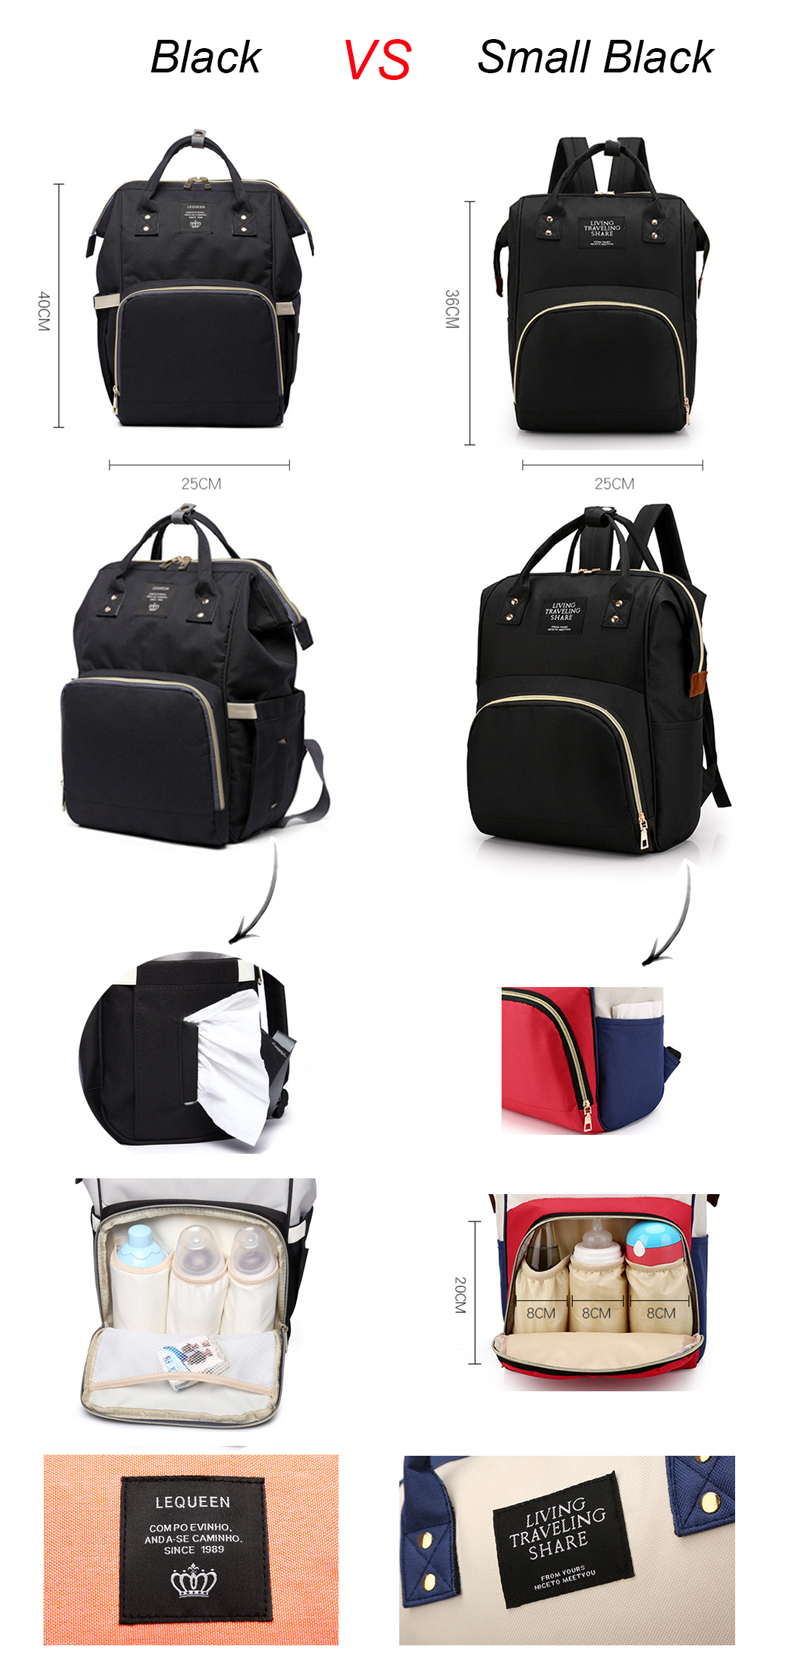 Large Capacity Nappy Bag Travel Backpack Nursing Bag for Baby Care Women's Fashion Bag